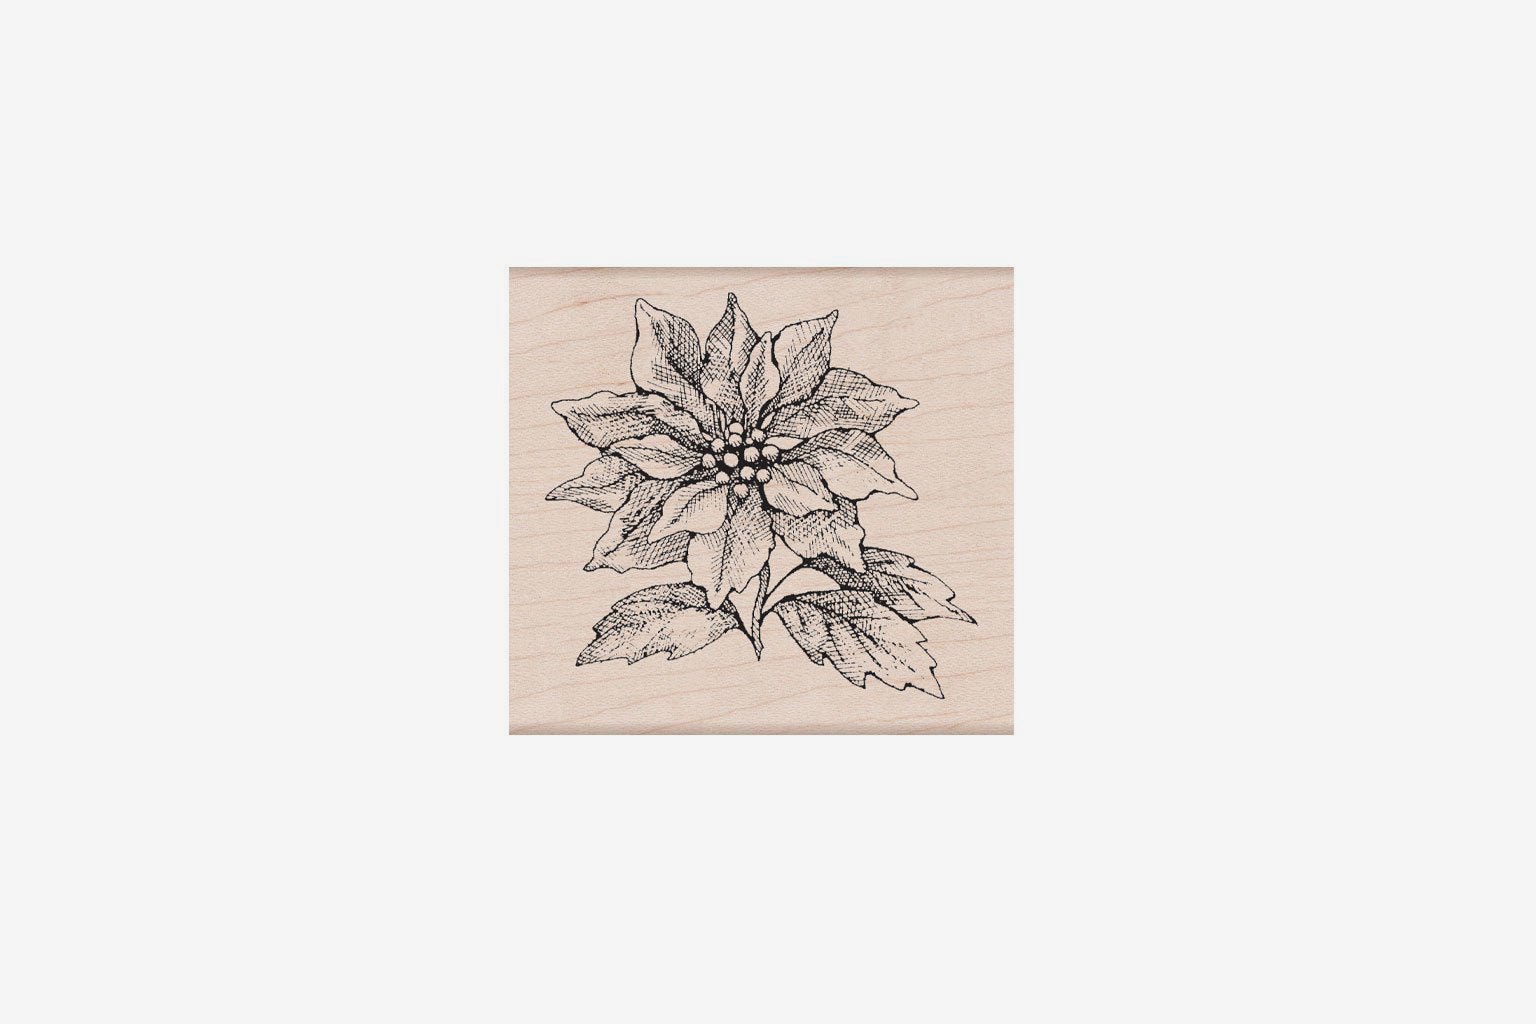 Hero Arts Christmas Stamp - From The Vault Poinsettia